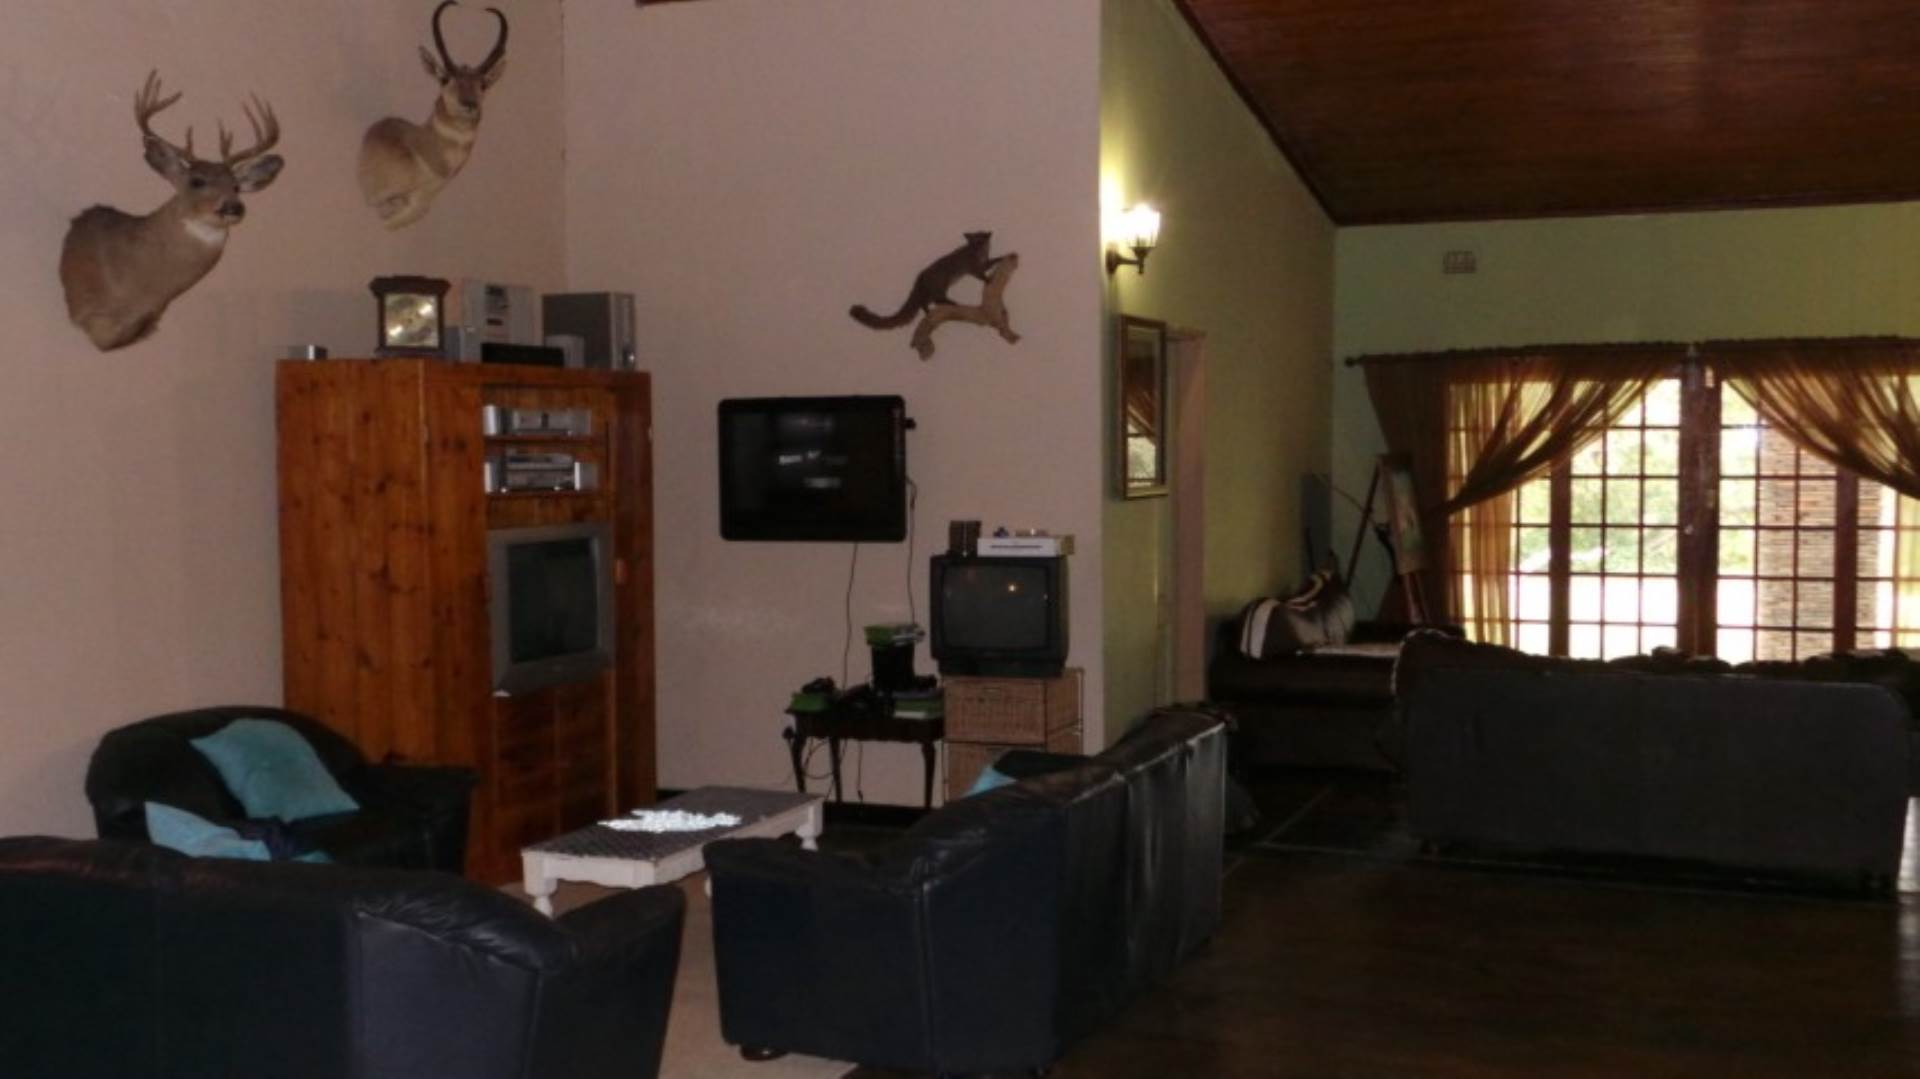 House For Sale In Guernsey Hoedspruit Limpopo R 3200000